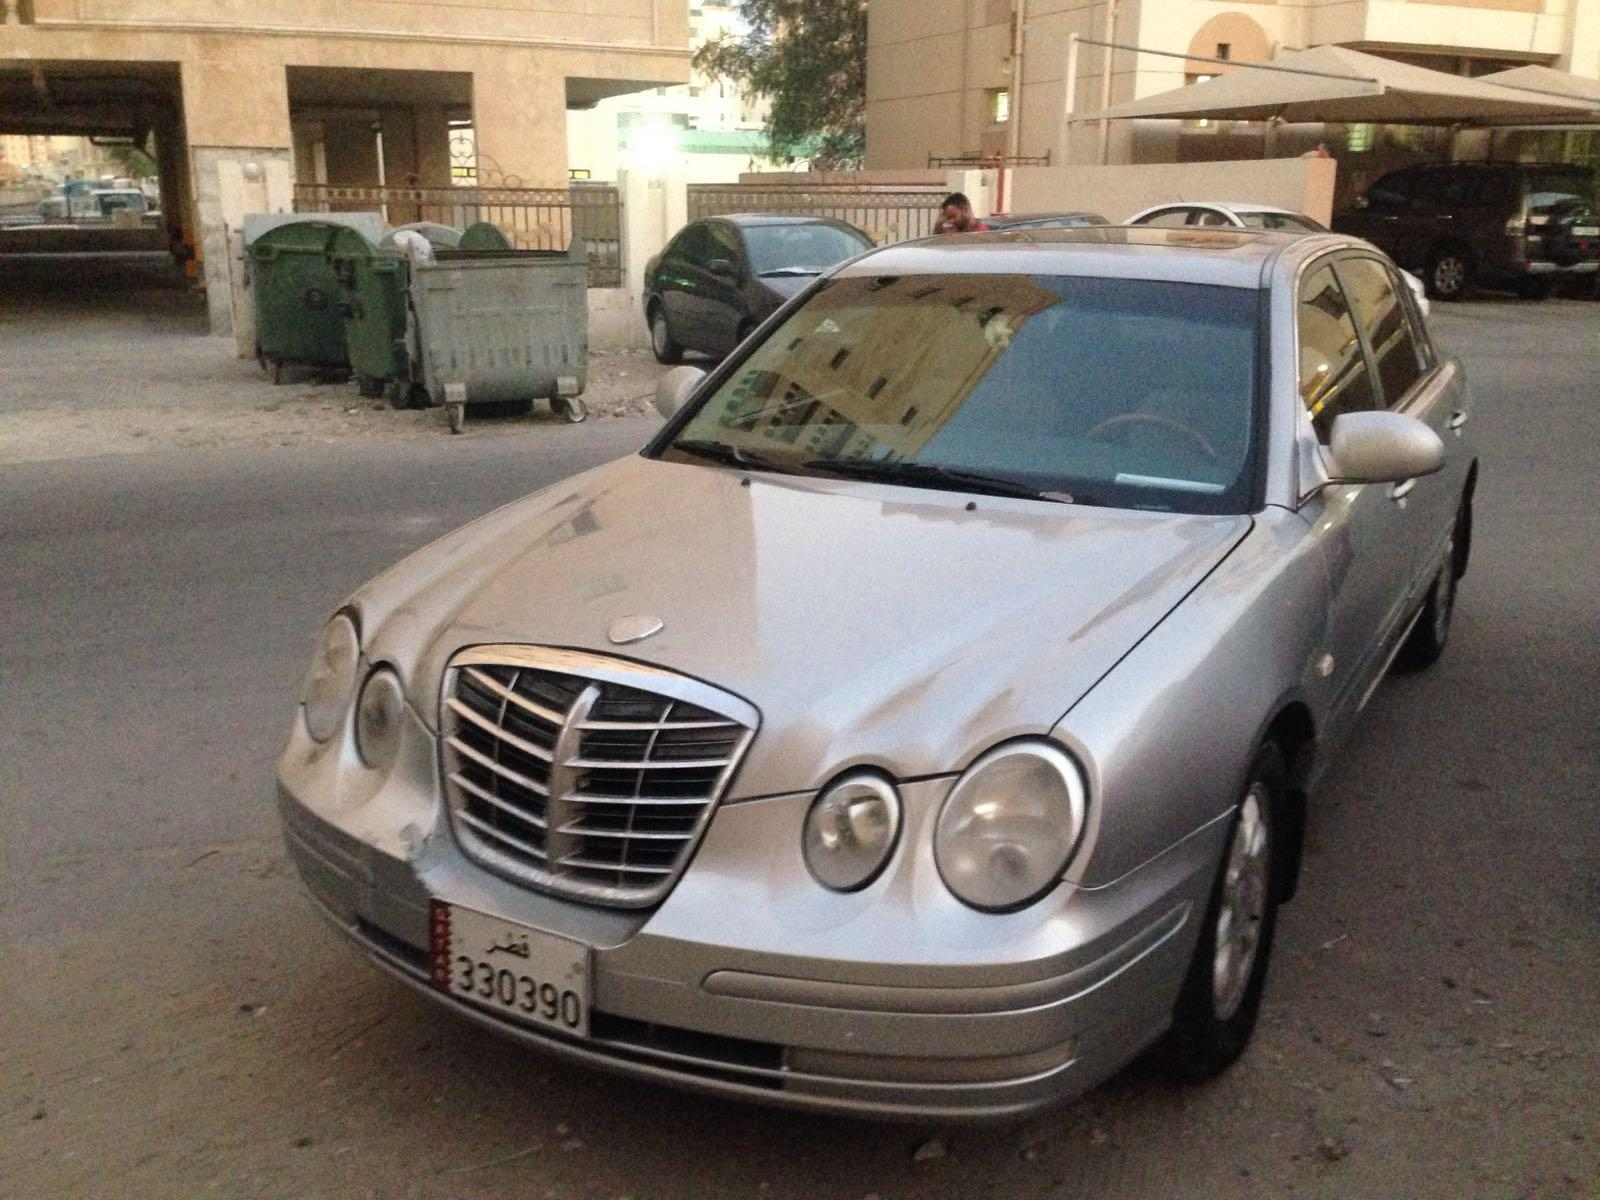 Kia Opirus 2006 for sale with good number plate